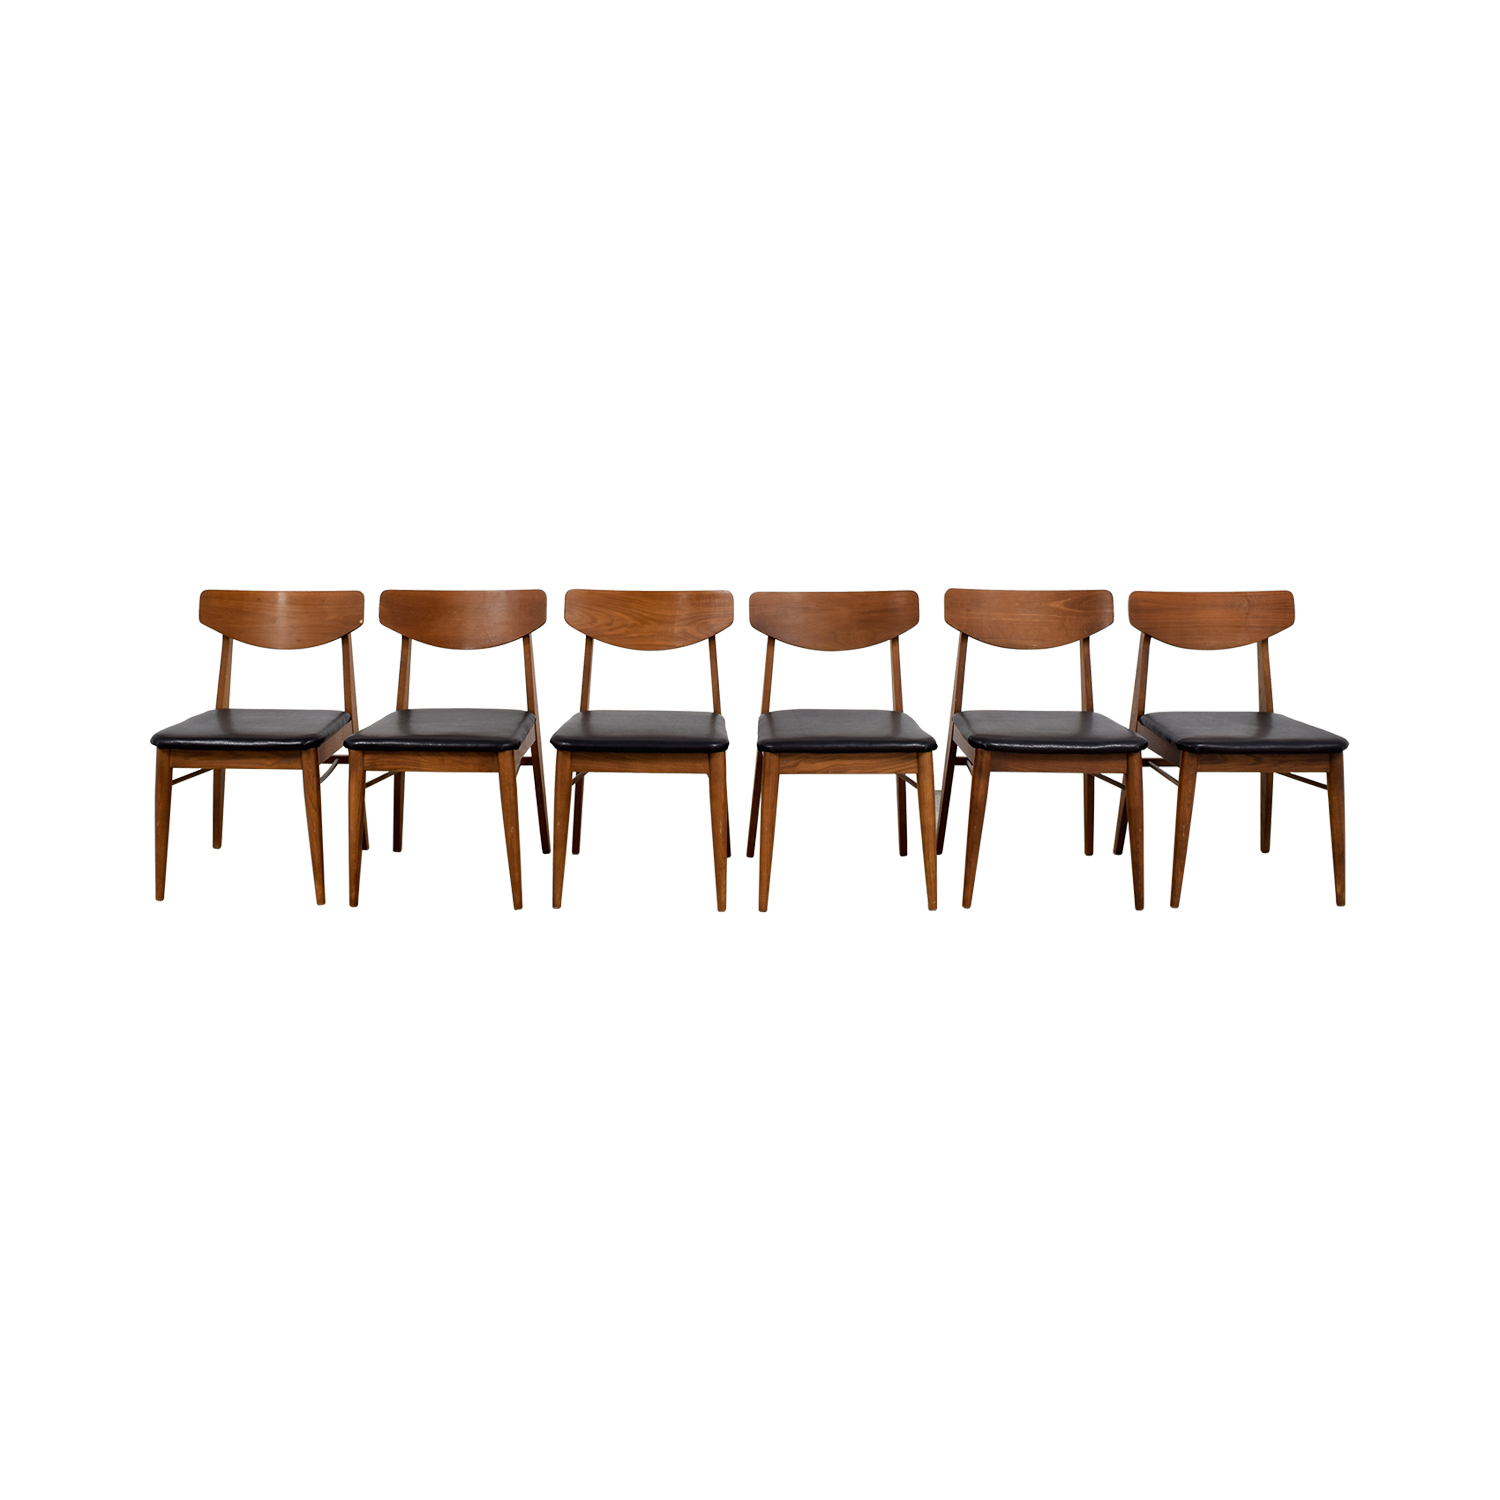 Danish Mid-Century Chairs discount